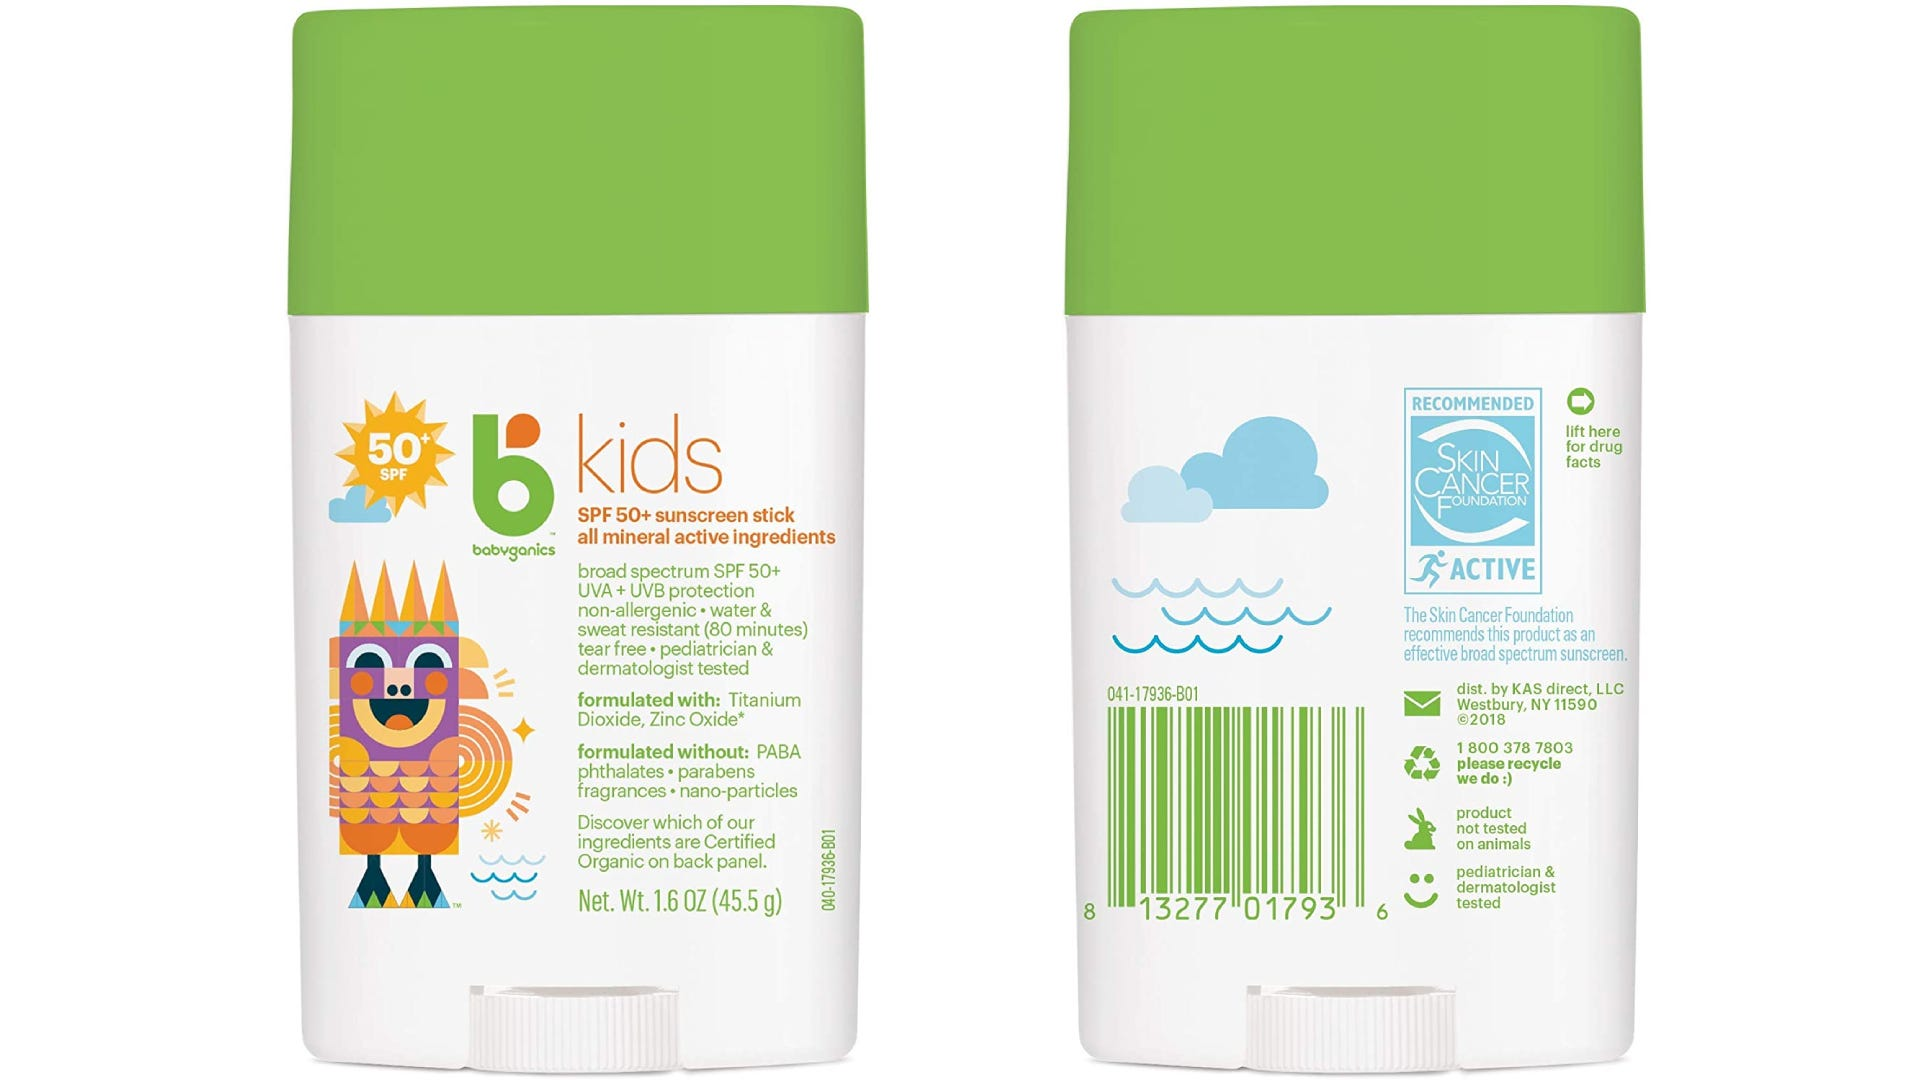 front and back view of Babyganics baby sunscreen stick container